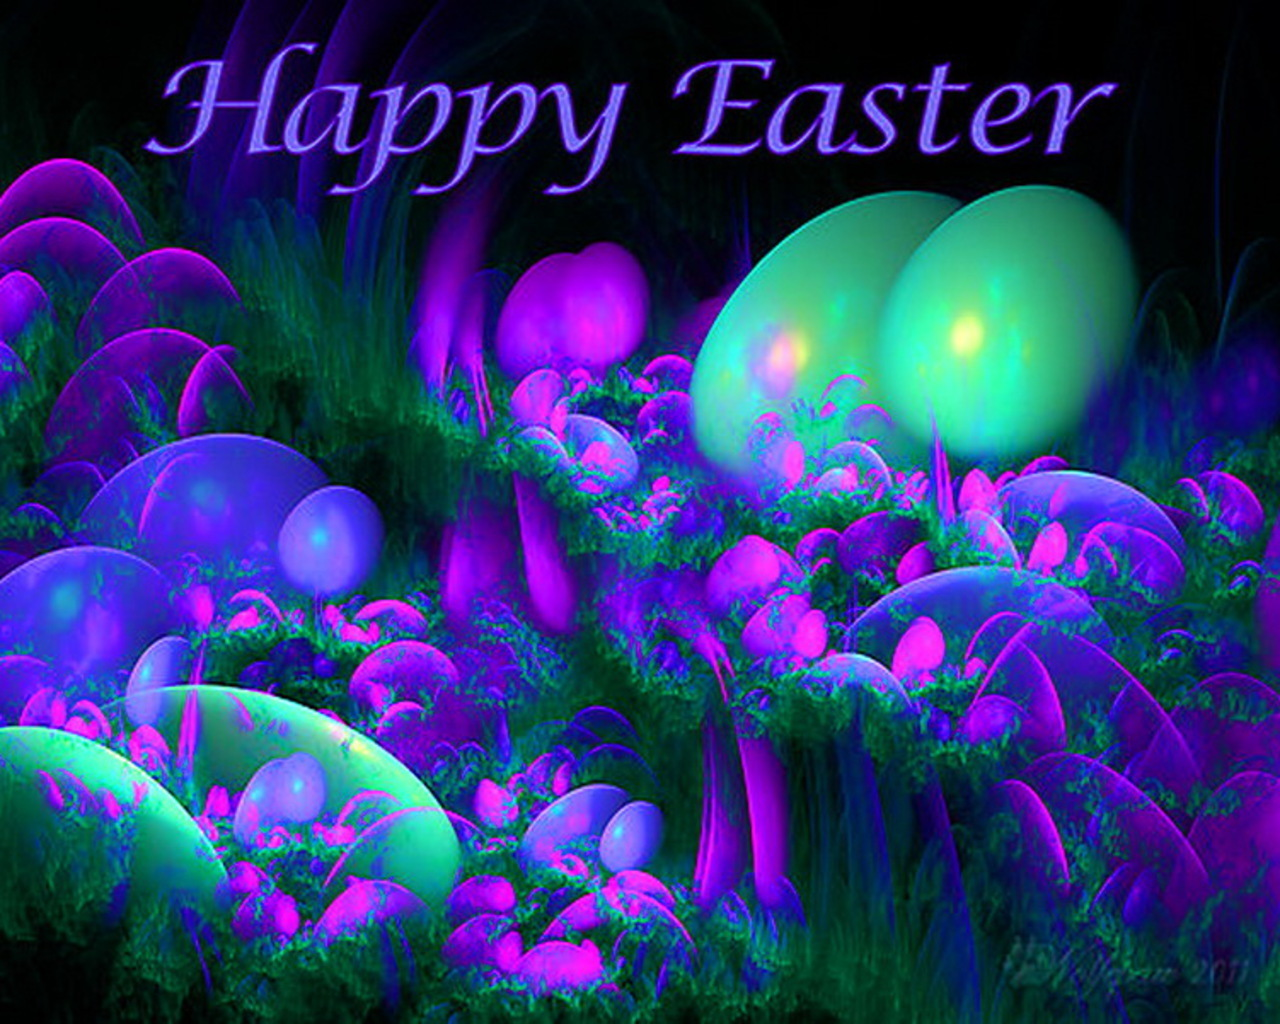 200 happy easter images 2018 easter photos pictures pics happy easter images m4hsunfo